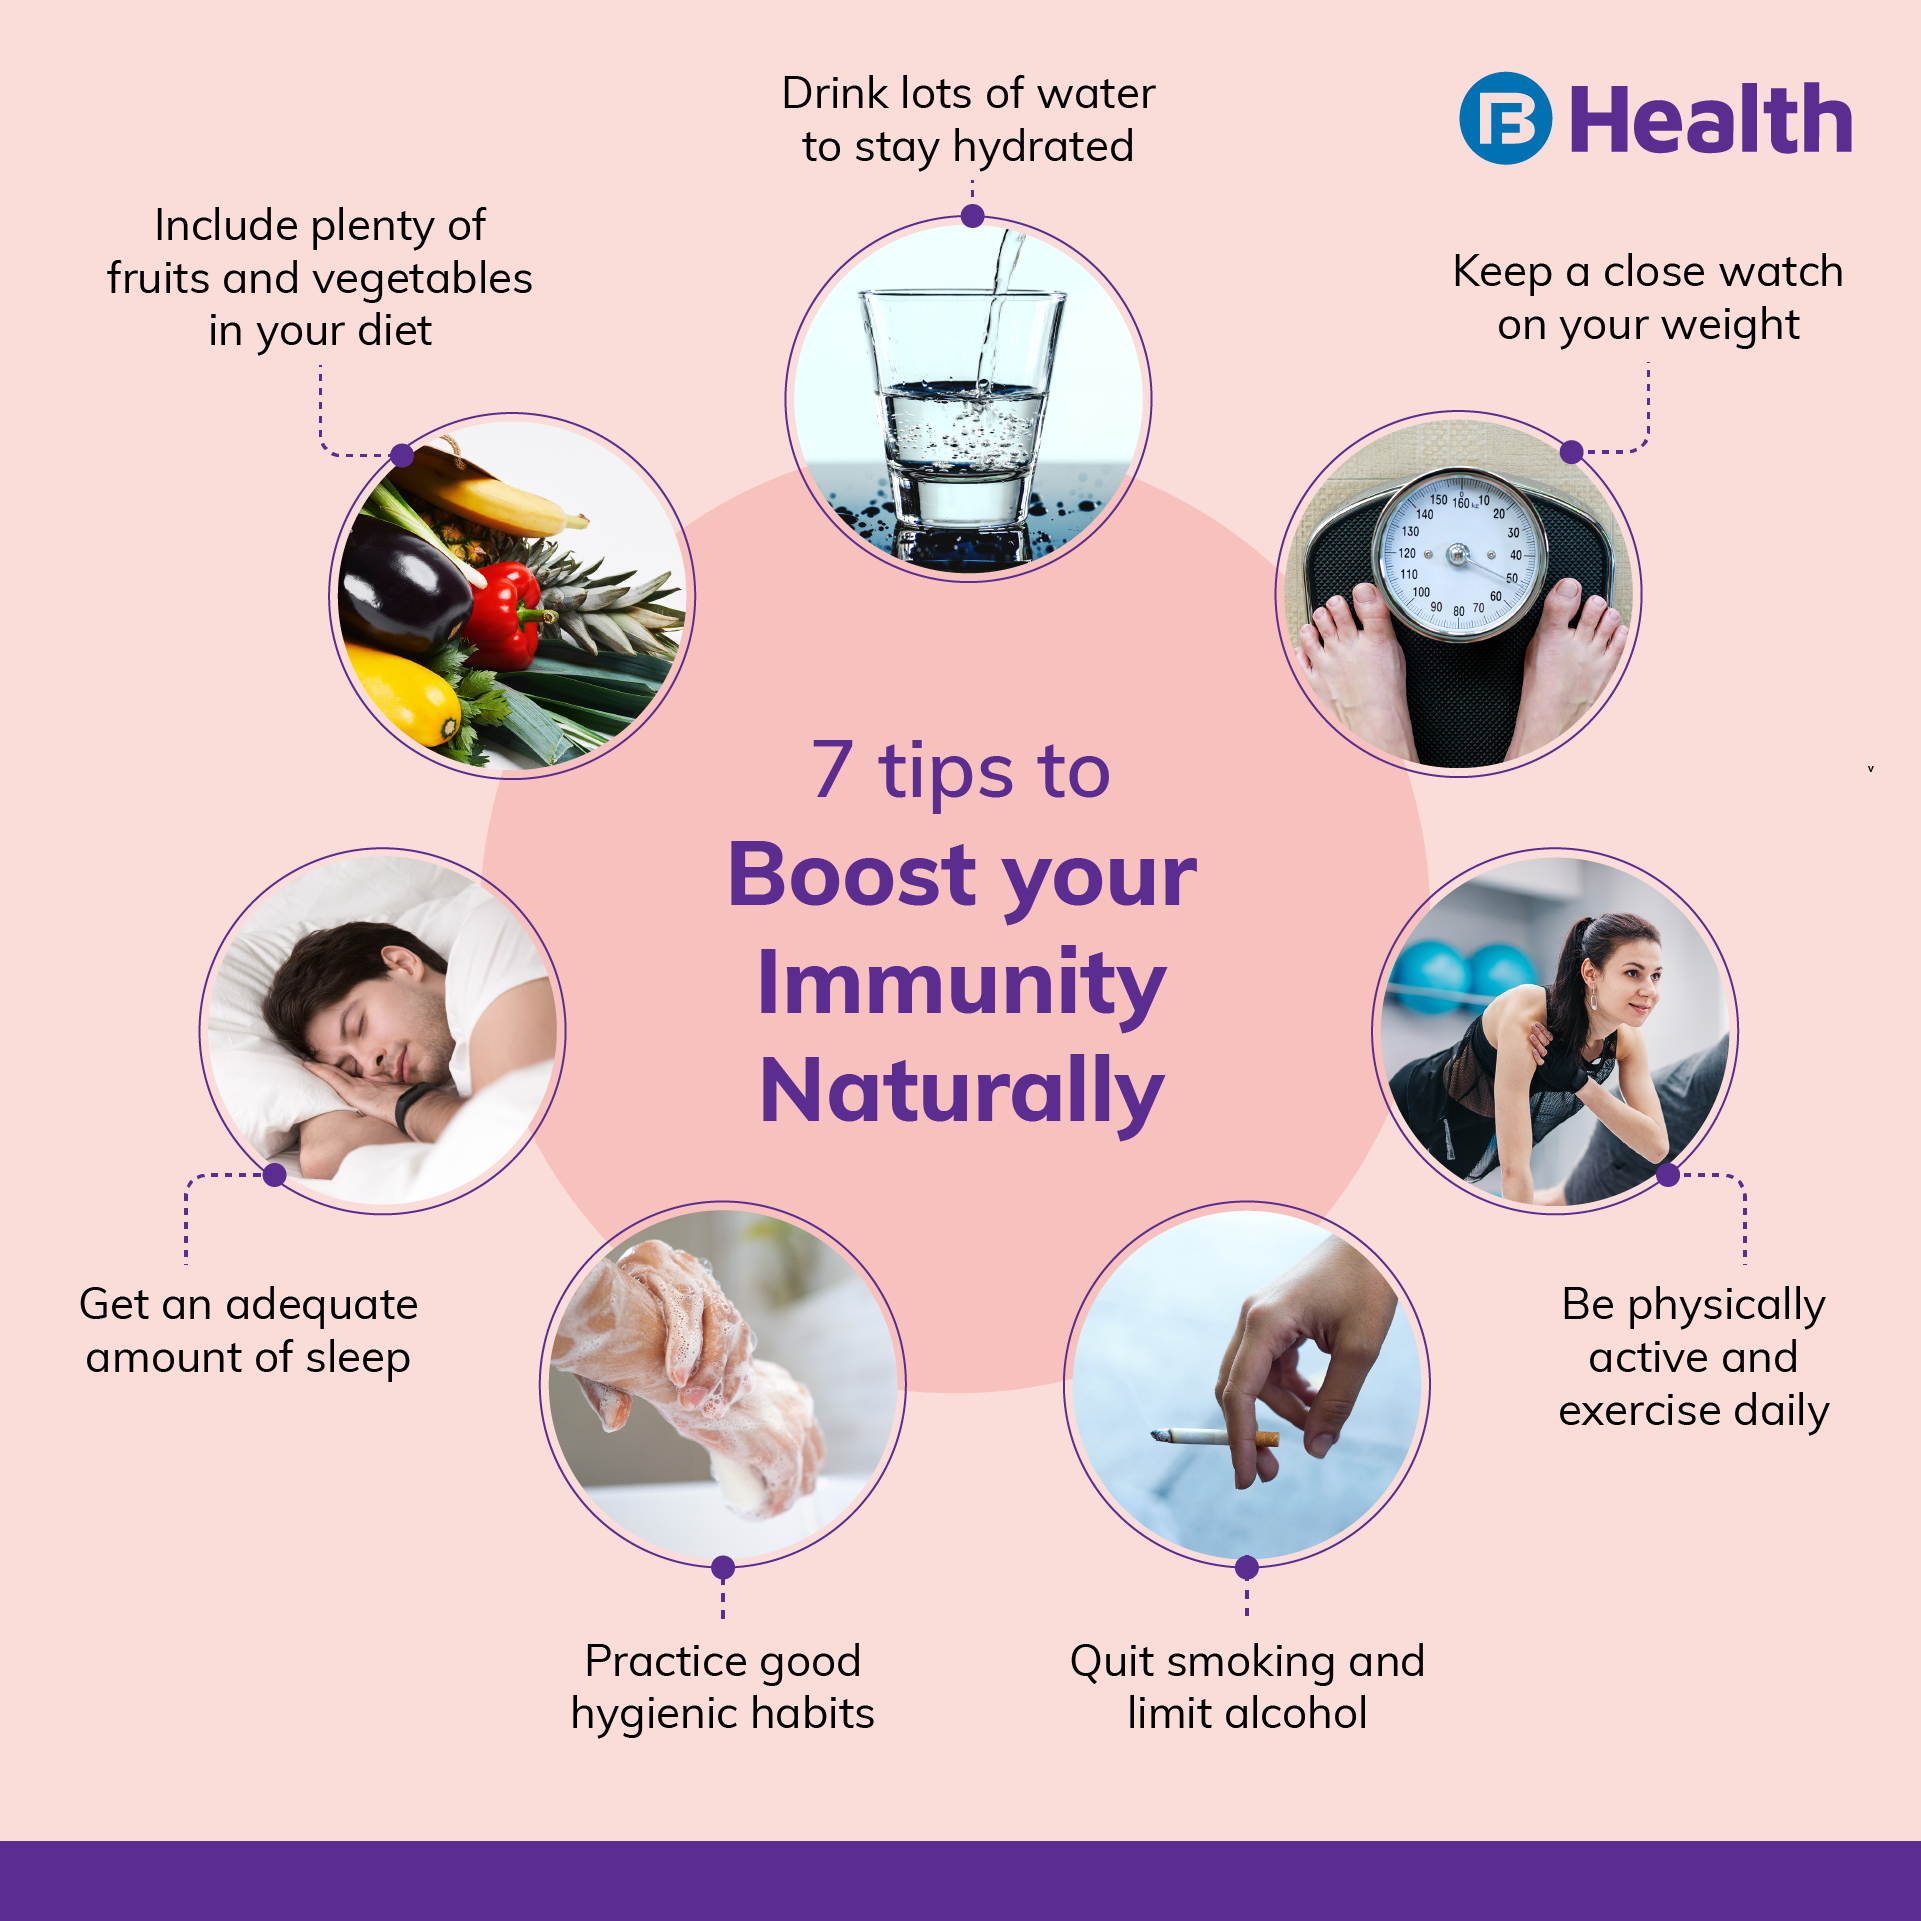 tips to boost immunity naturally